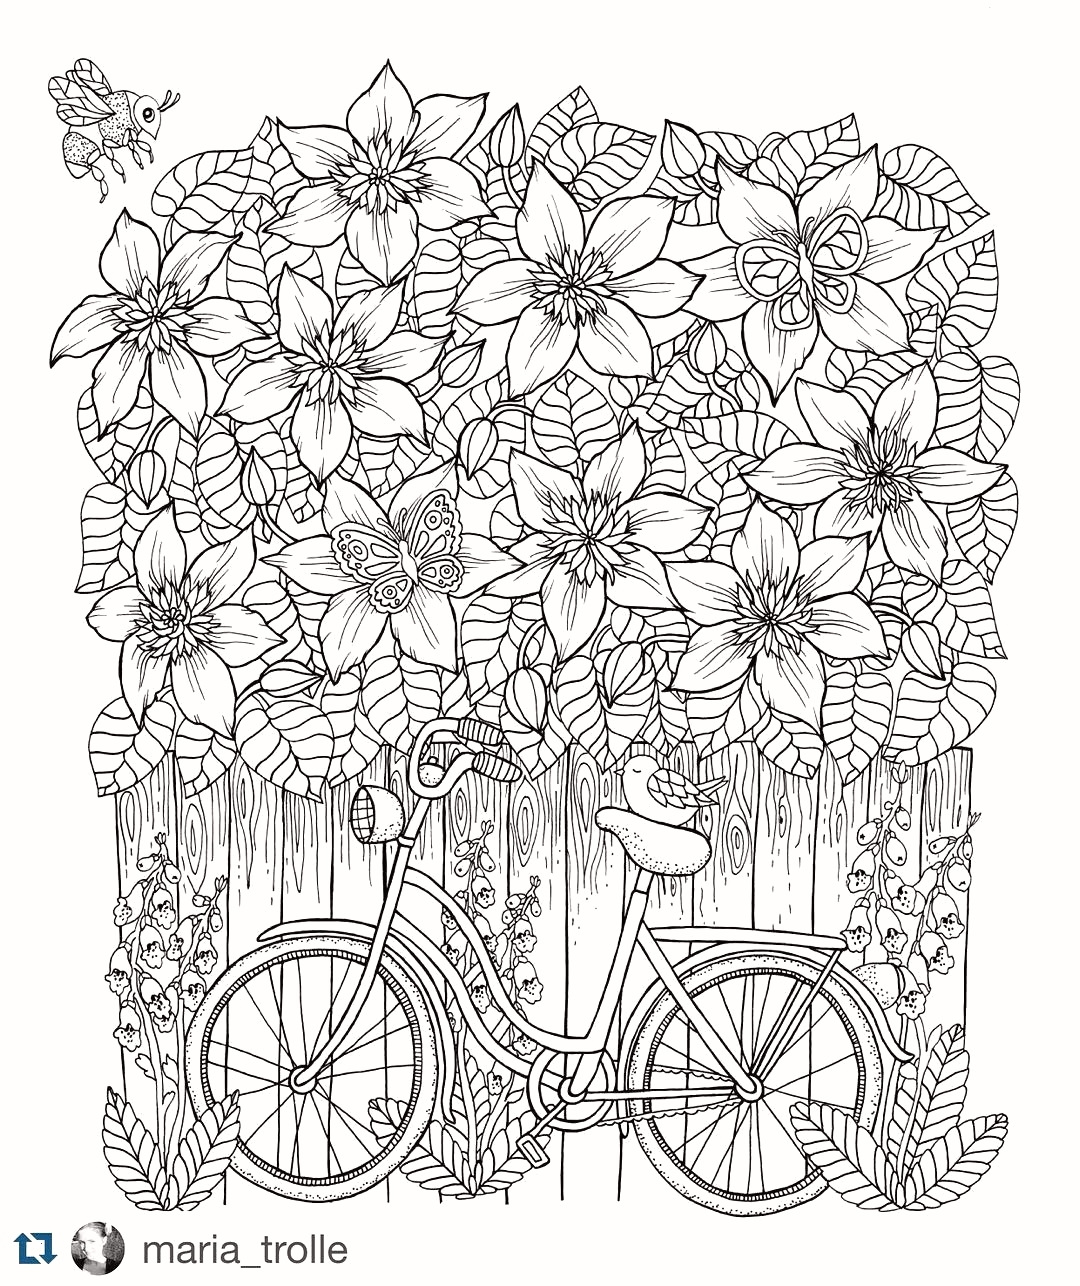 Merry Christmas Card Coloring Pages With 50 Positive Dannerchonoles Com